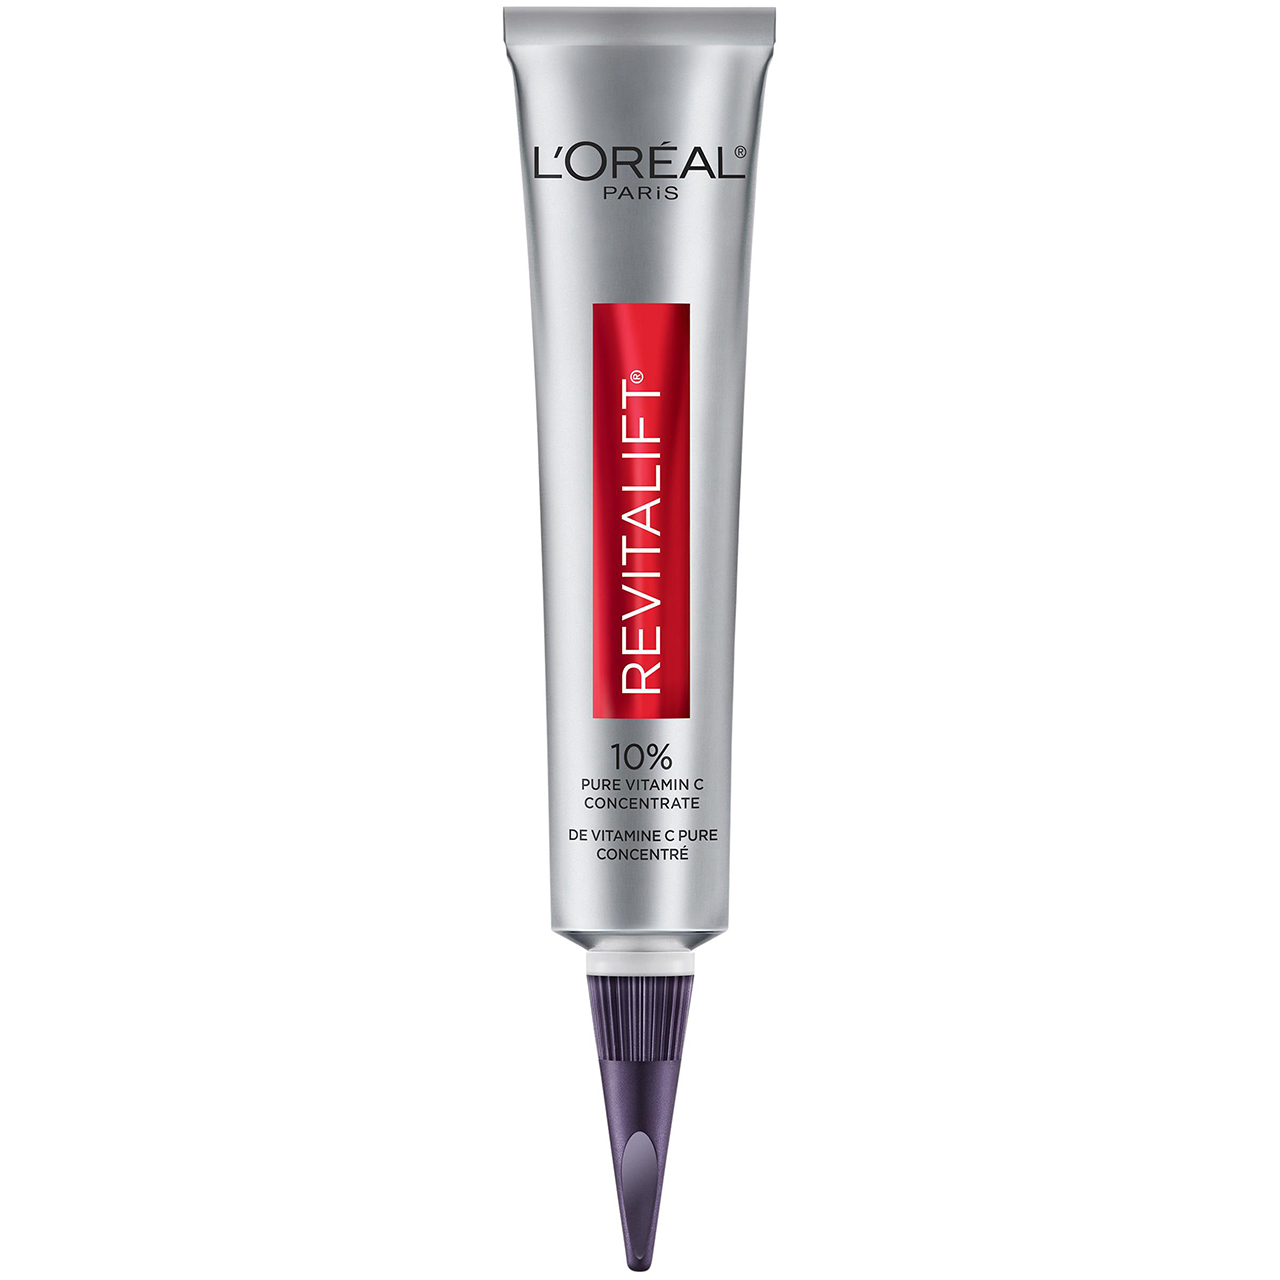 L'Oréal Paris Revitalift Derm Intensives 10% Pure Vitamin C Concentrate